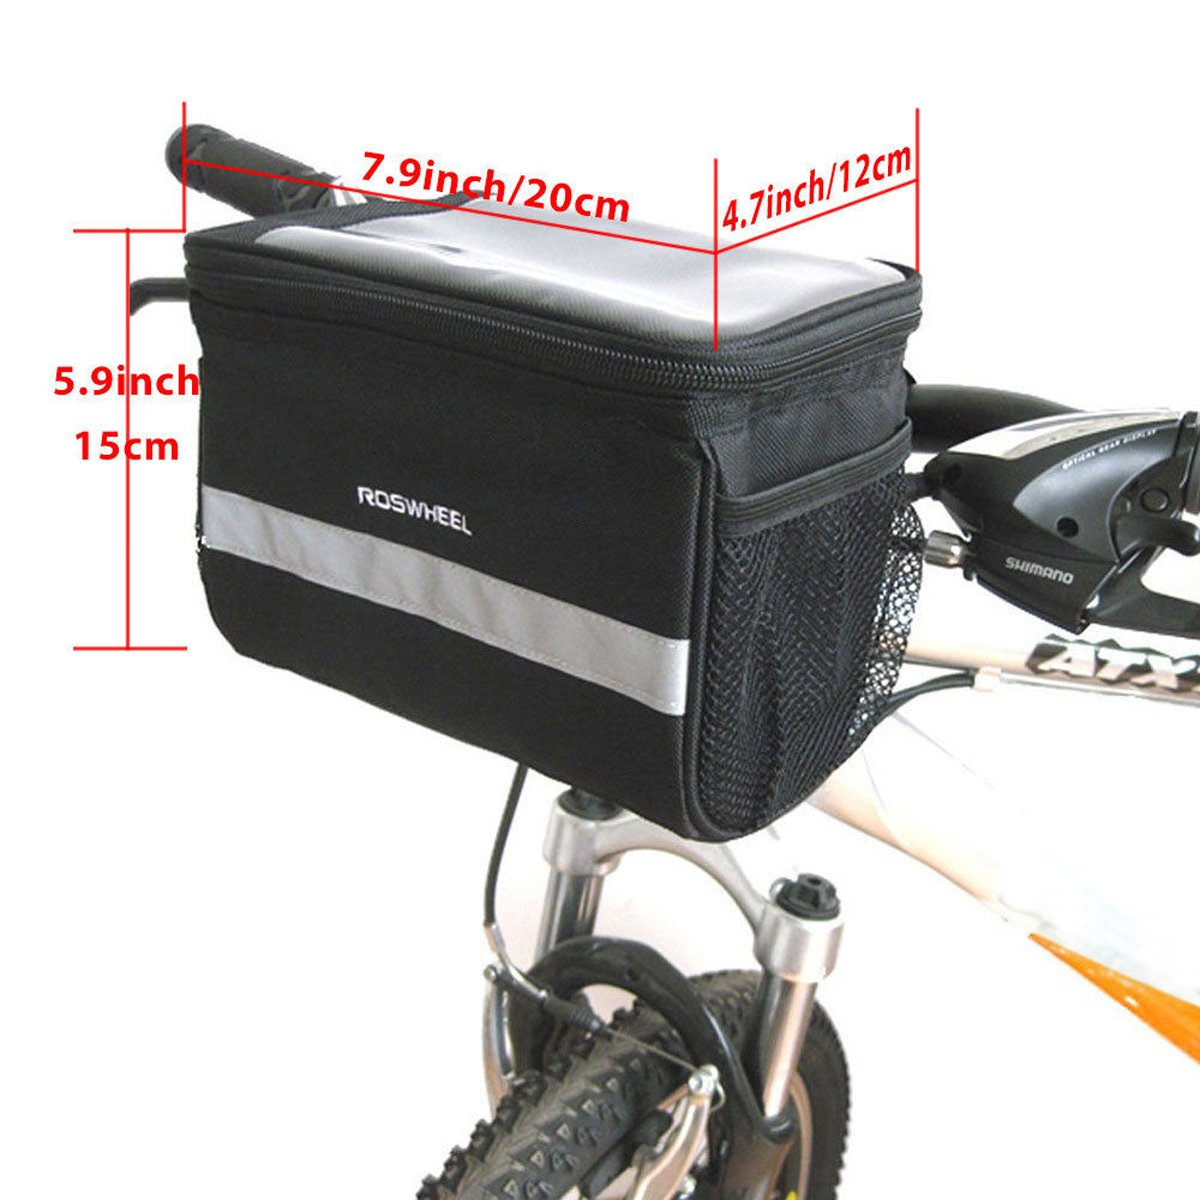 TRADERPLUS Bicycle Basket Handlebar Bag with Sliver Grey Reflective Stripe for Mountain Bike Outdoor Activity Cycling Pack Accessories 3.5L by TRADERPLUS (Image #7)